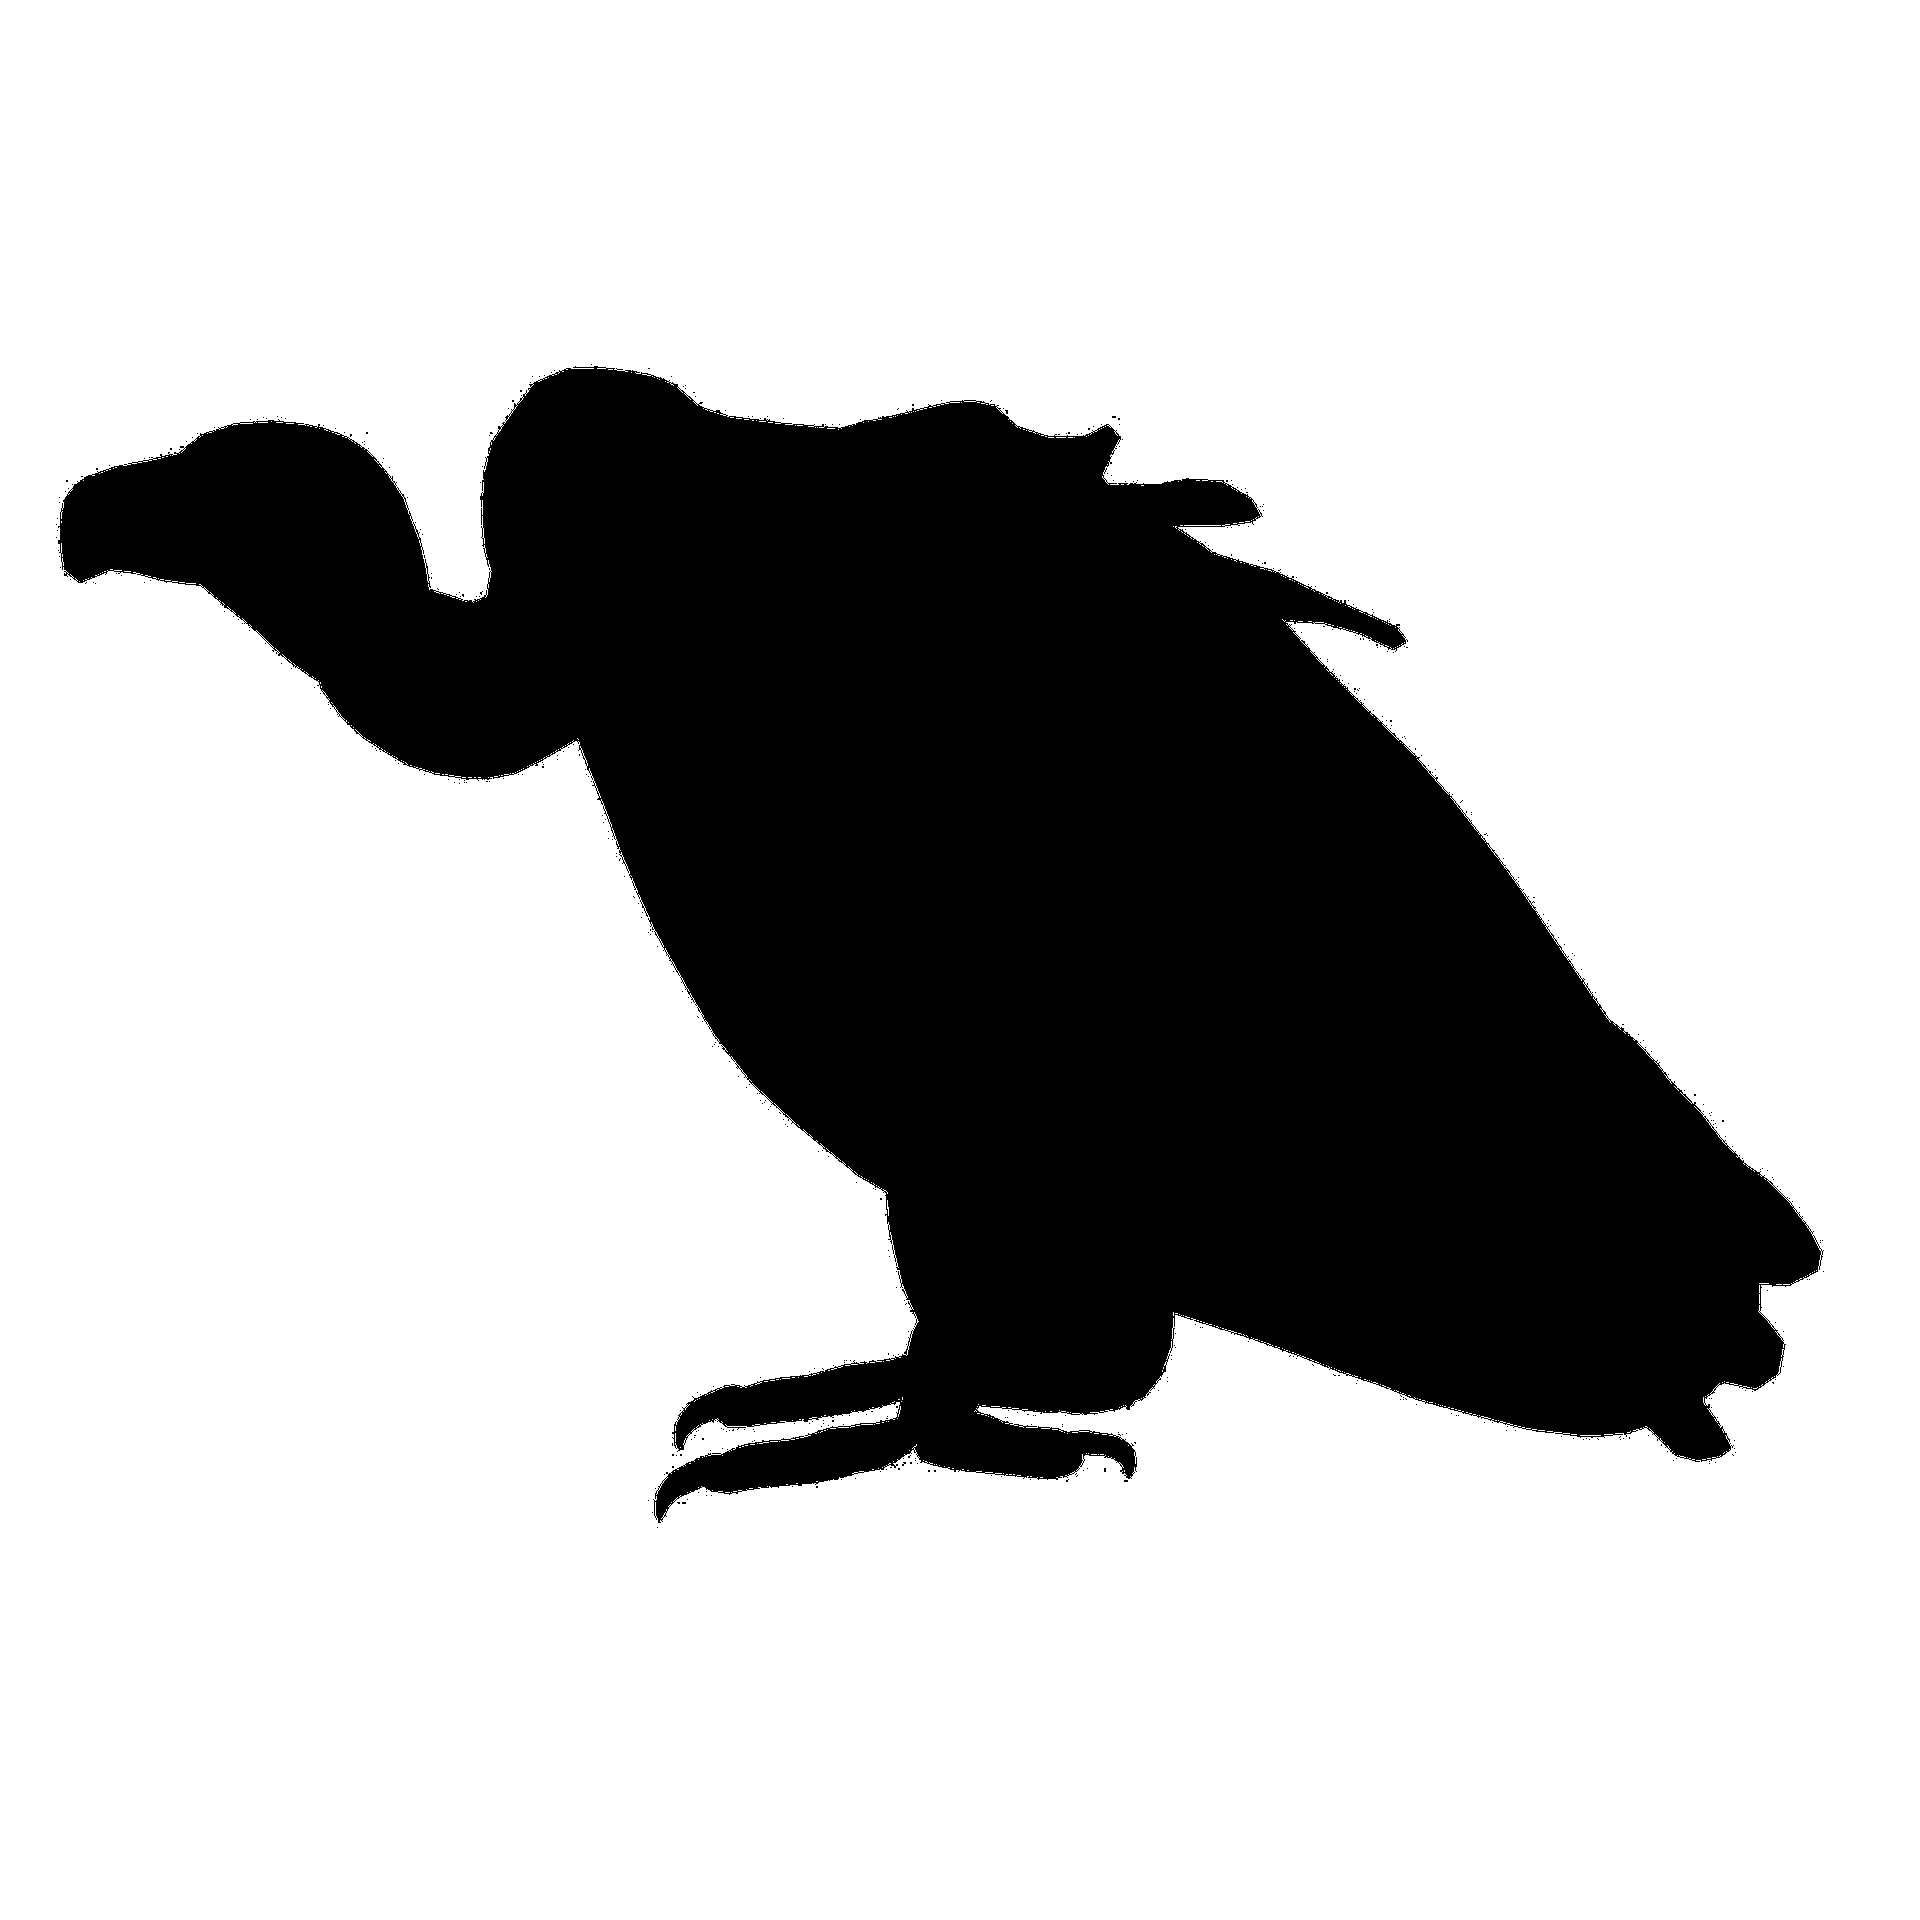 1920x1920 Black Vulture Free Stock Photo